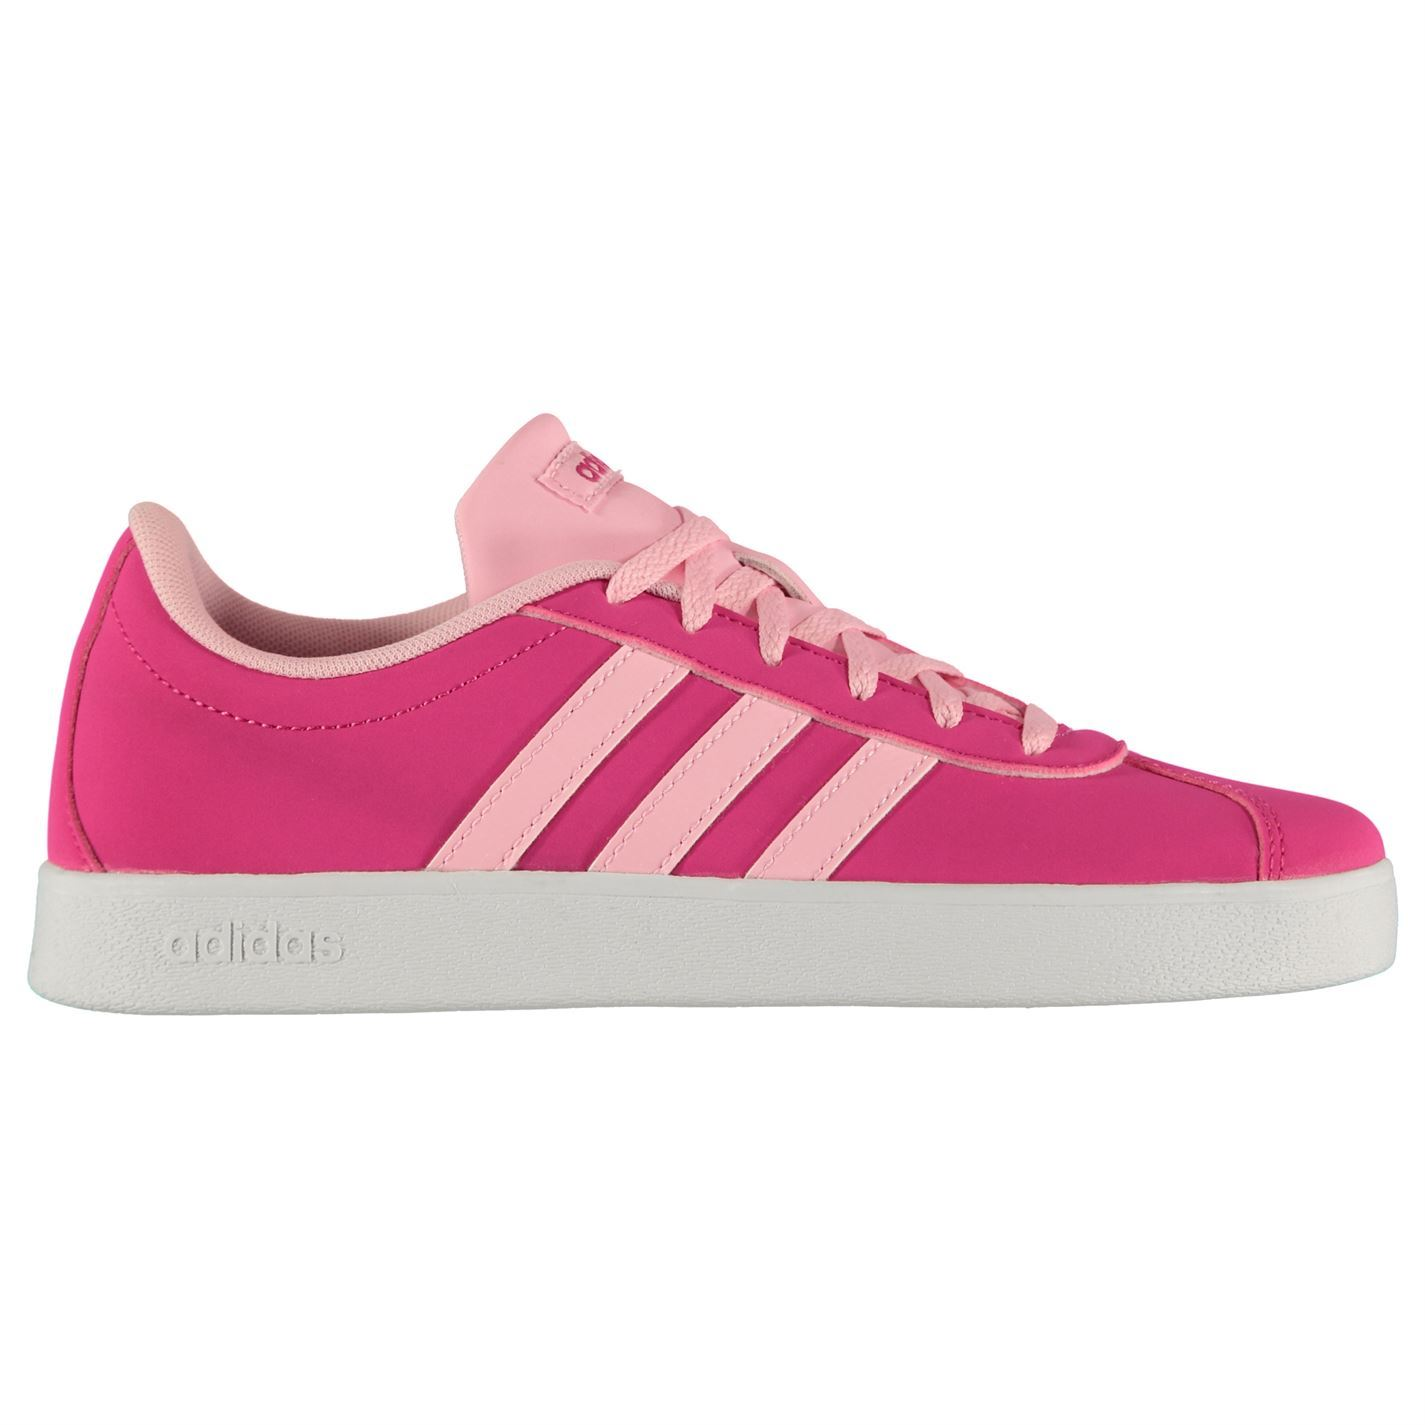 new style 02f61 be4e6 ... adidas VL Court 2.0 K Trainers Junior Girls Pink White Shoes Footwear  ...